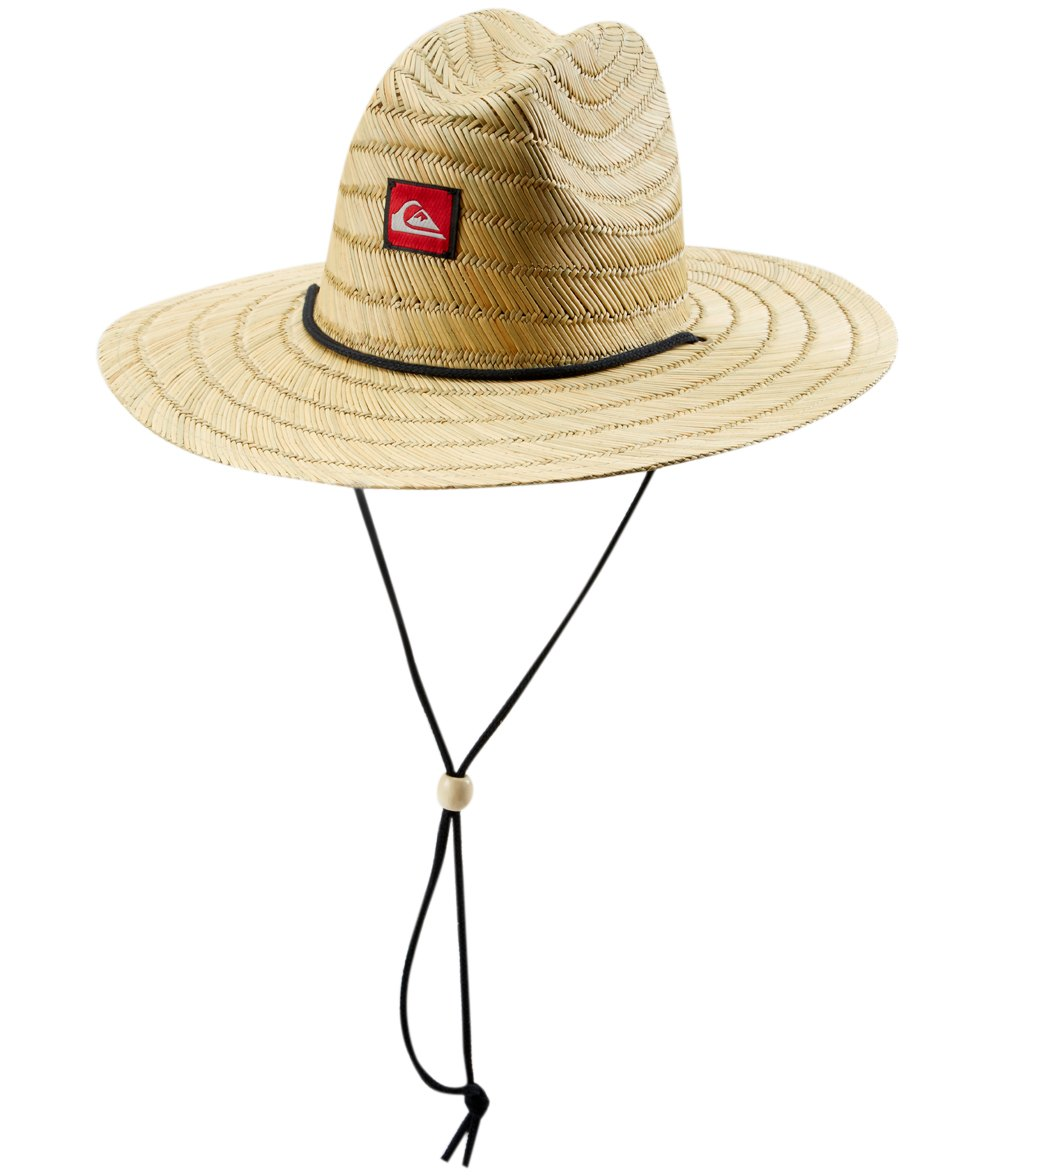 d189abbff2329c Quiksilver Boys' Pierside Lifeguard Hat at SwimOutlet.com